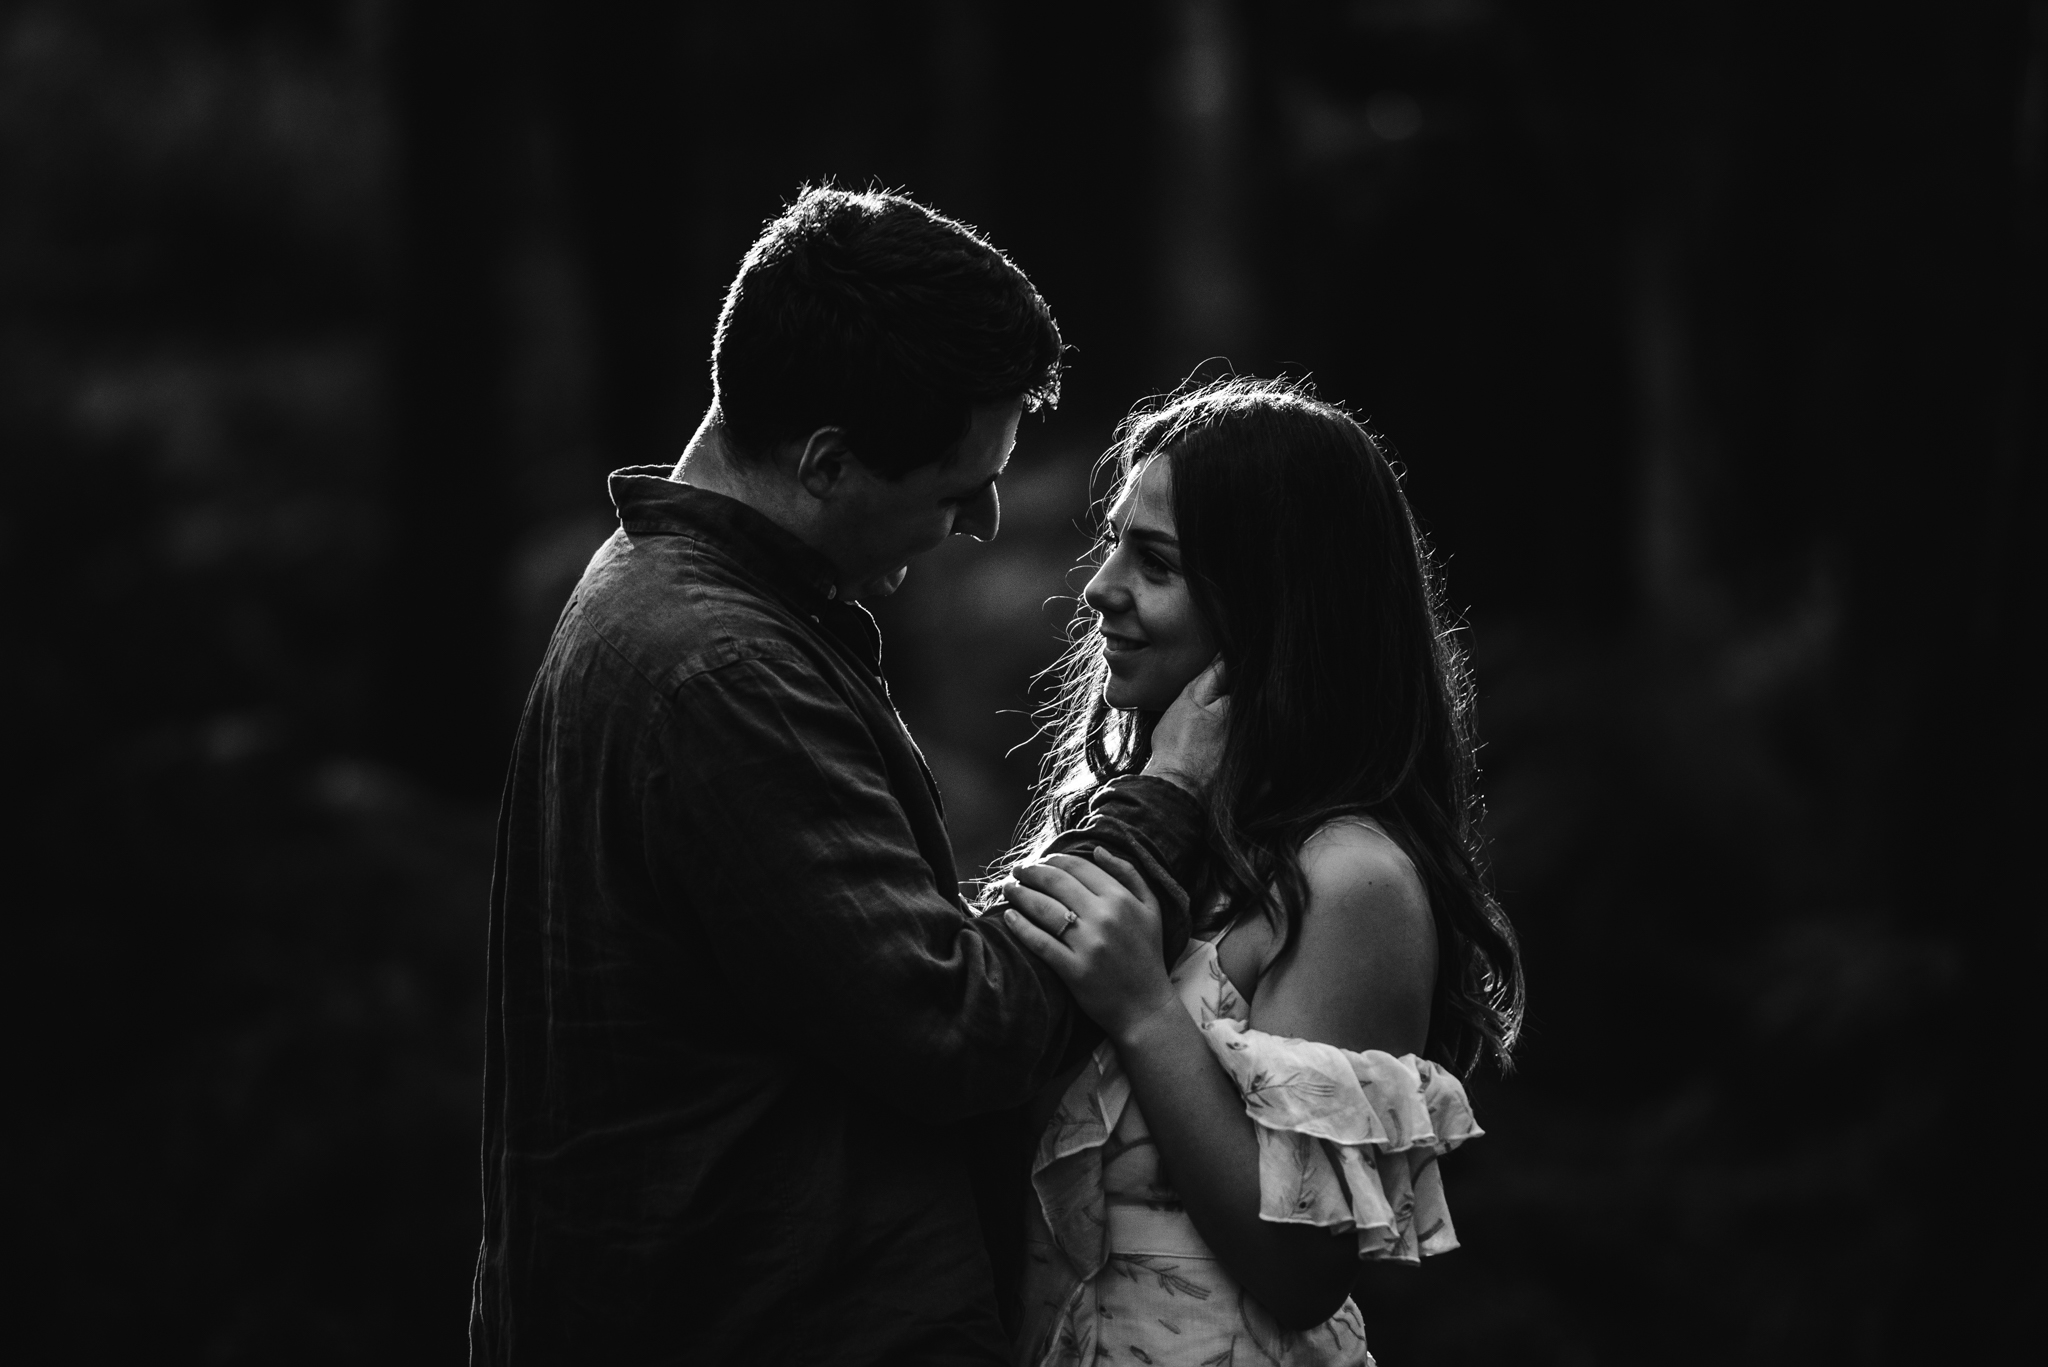 launceston couples photographer-31.jpg